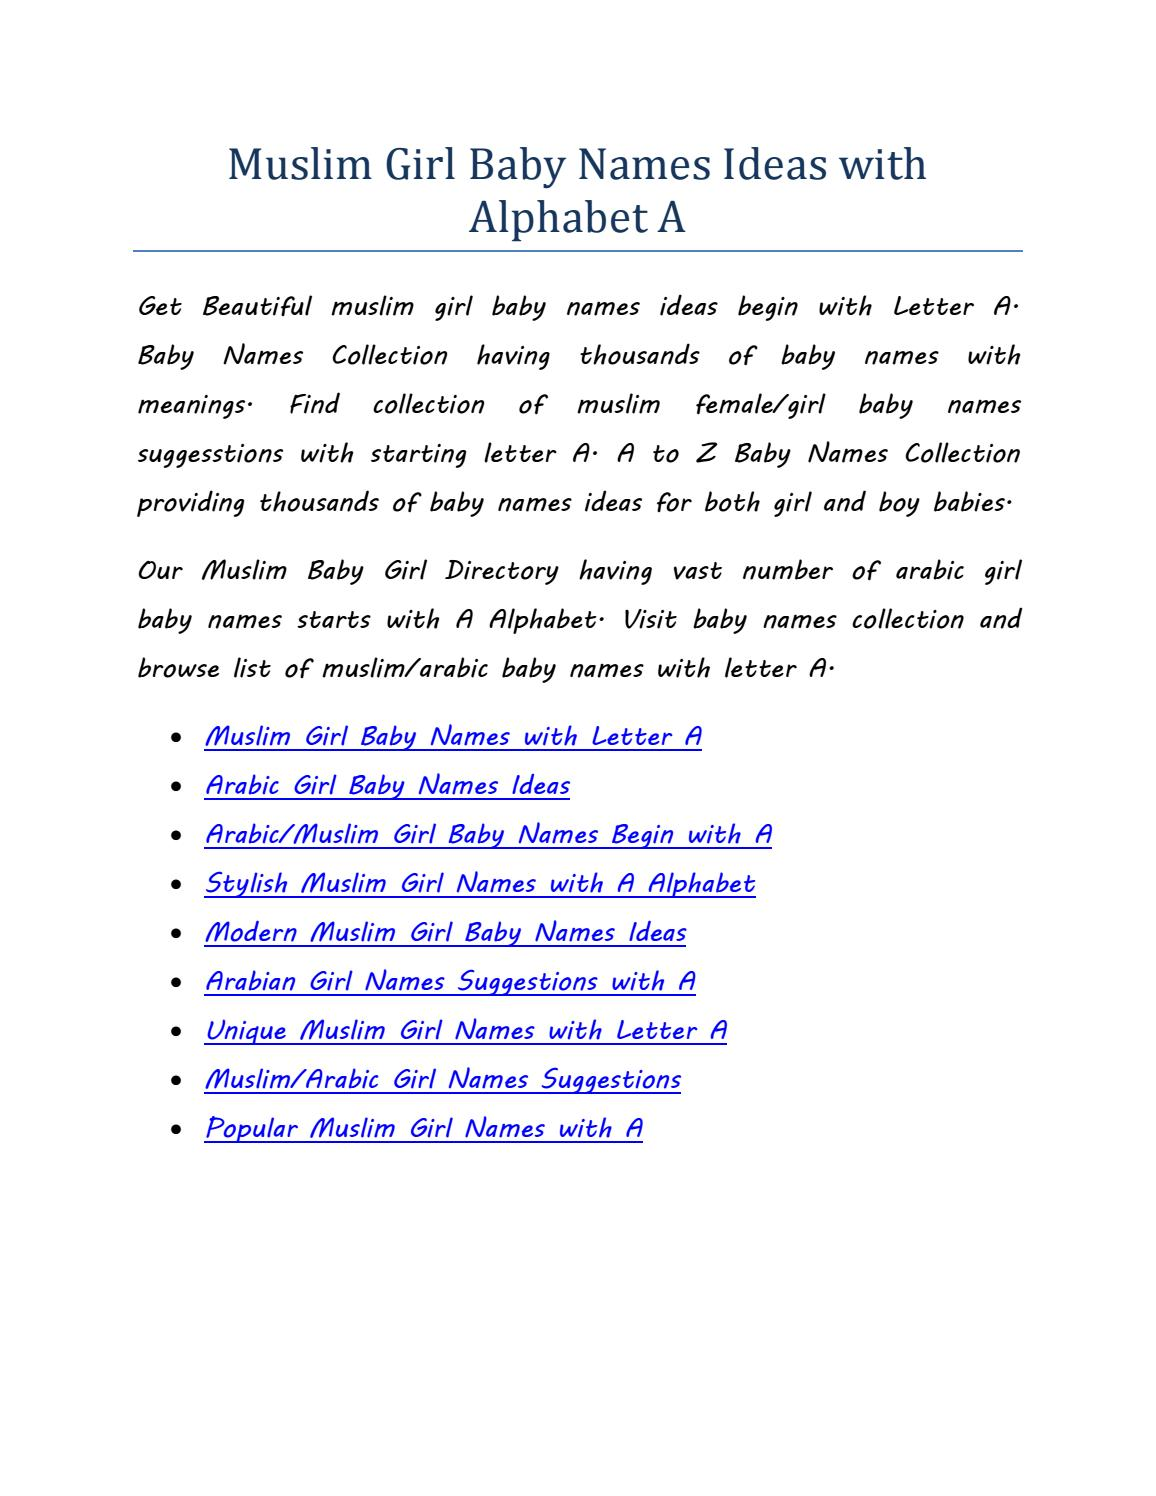 Muslim girl baby names ideas with alphabet a by